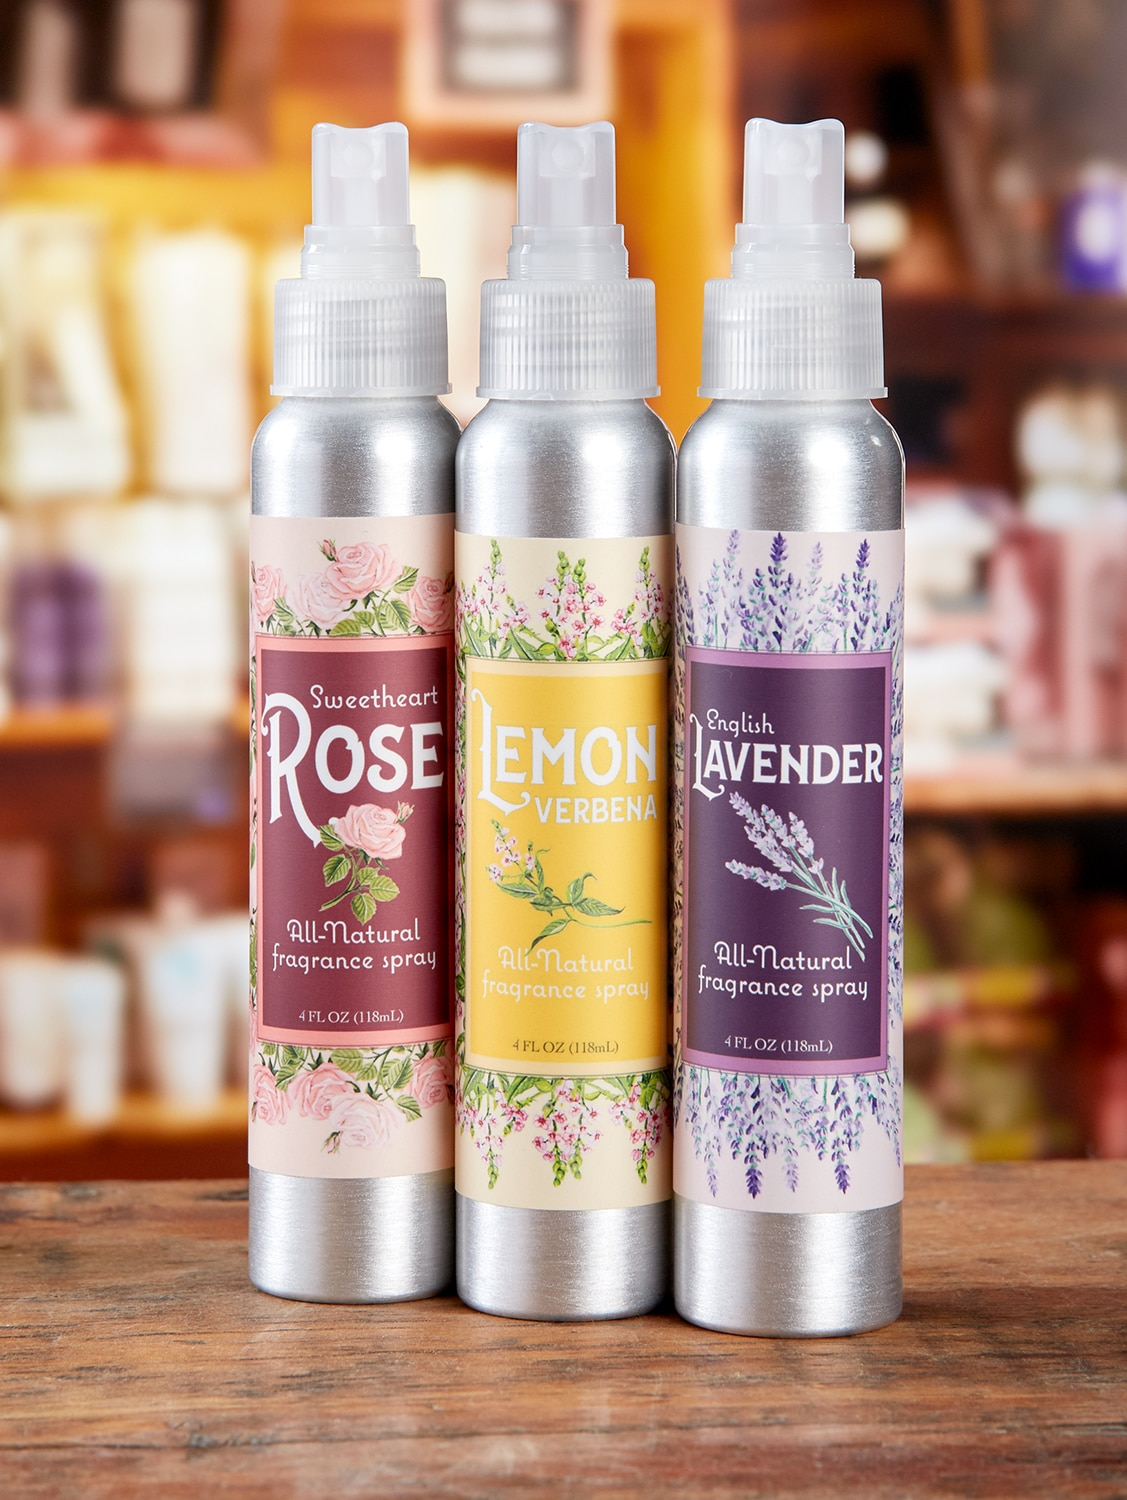 All-Natural Body Spray, In 3 Scents